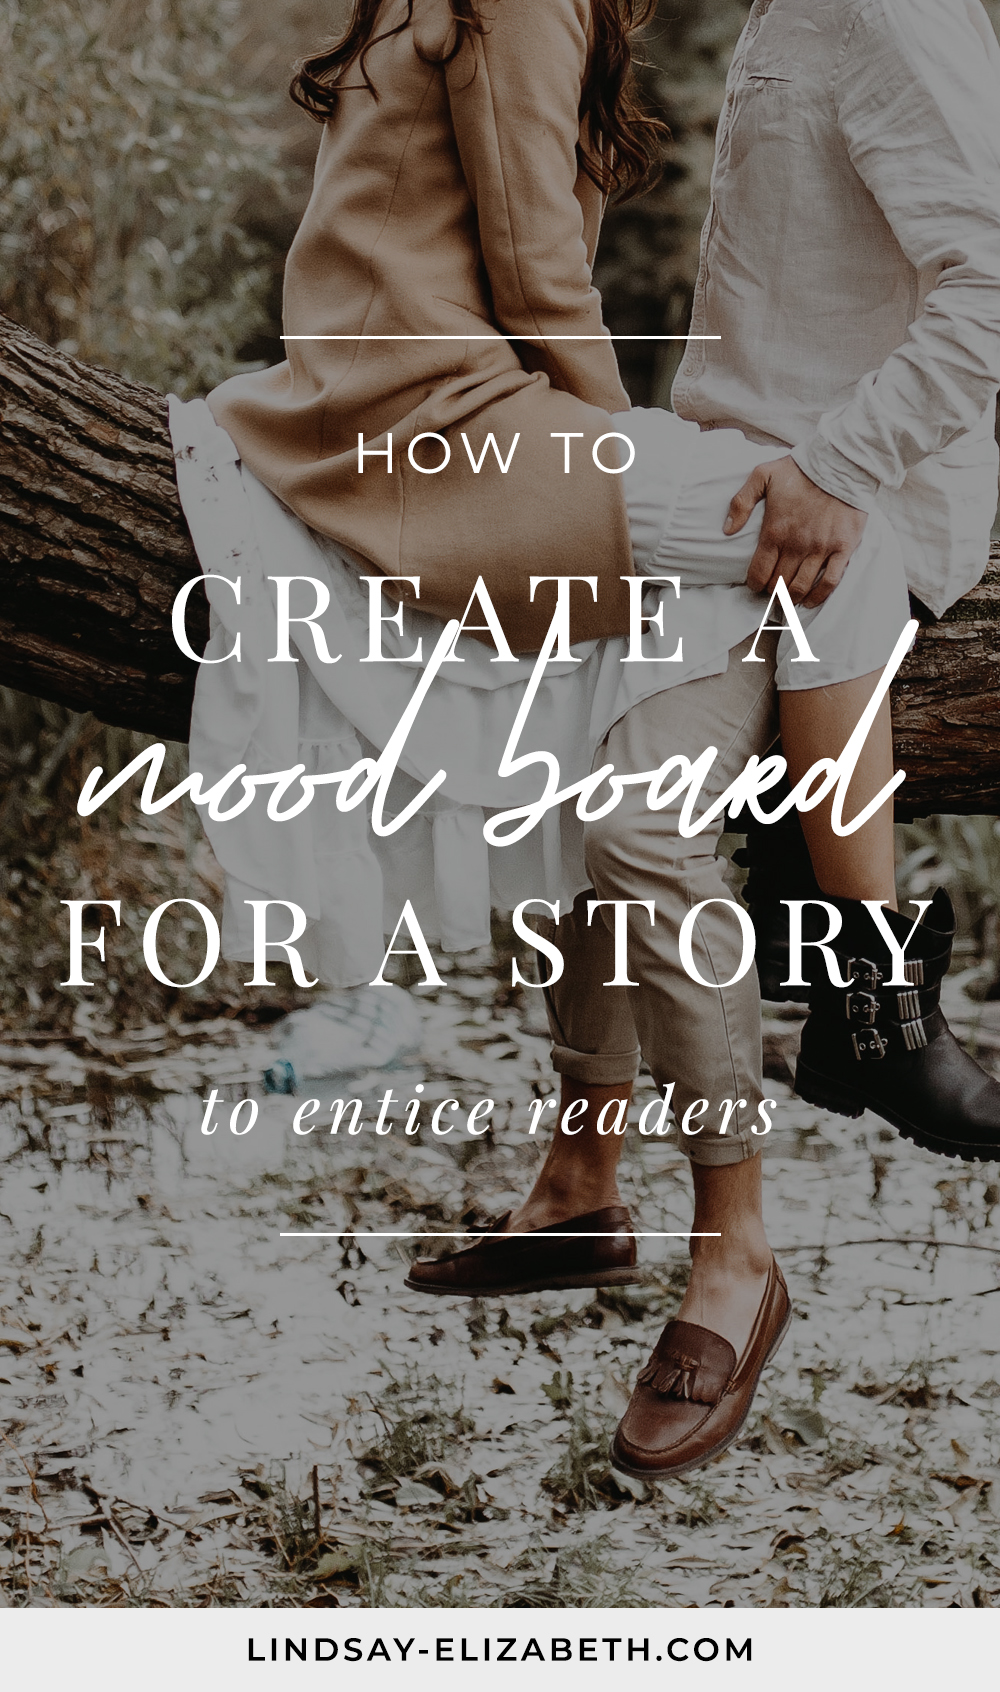 Mood boards capture the overall feel and vibe of your story to help you bring it to life. Here are some tips on how to put together a powerful story mood board that will entice readers. #writingtips #writingadvice #writers #authors